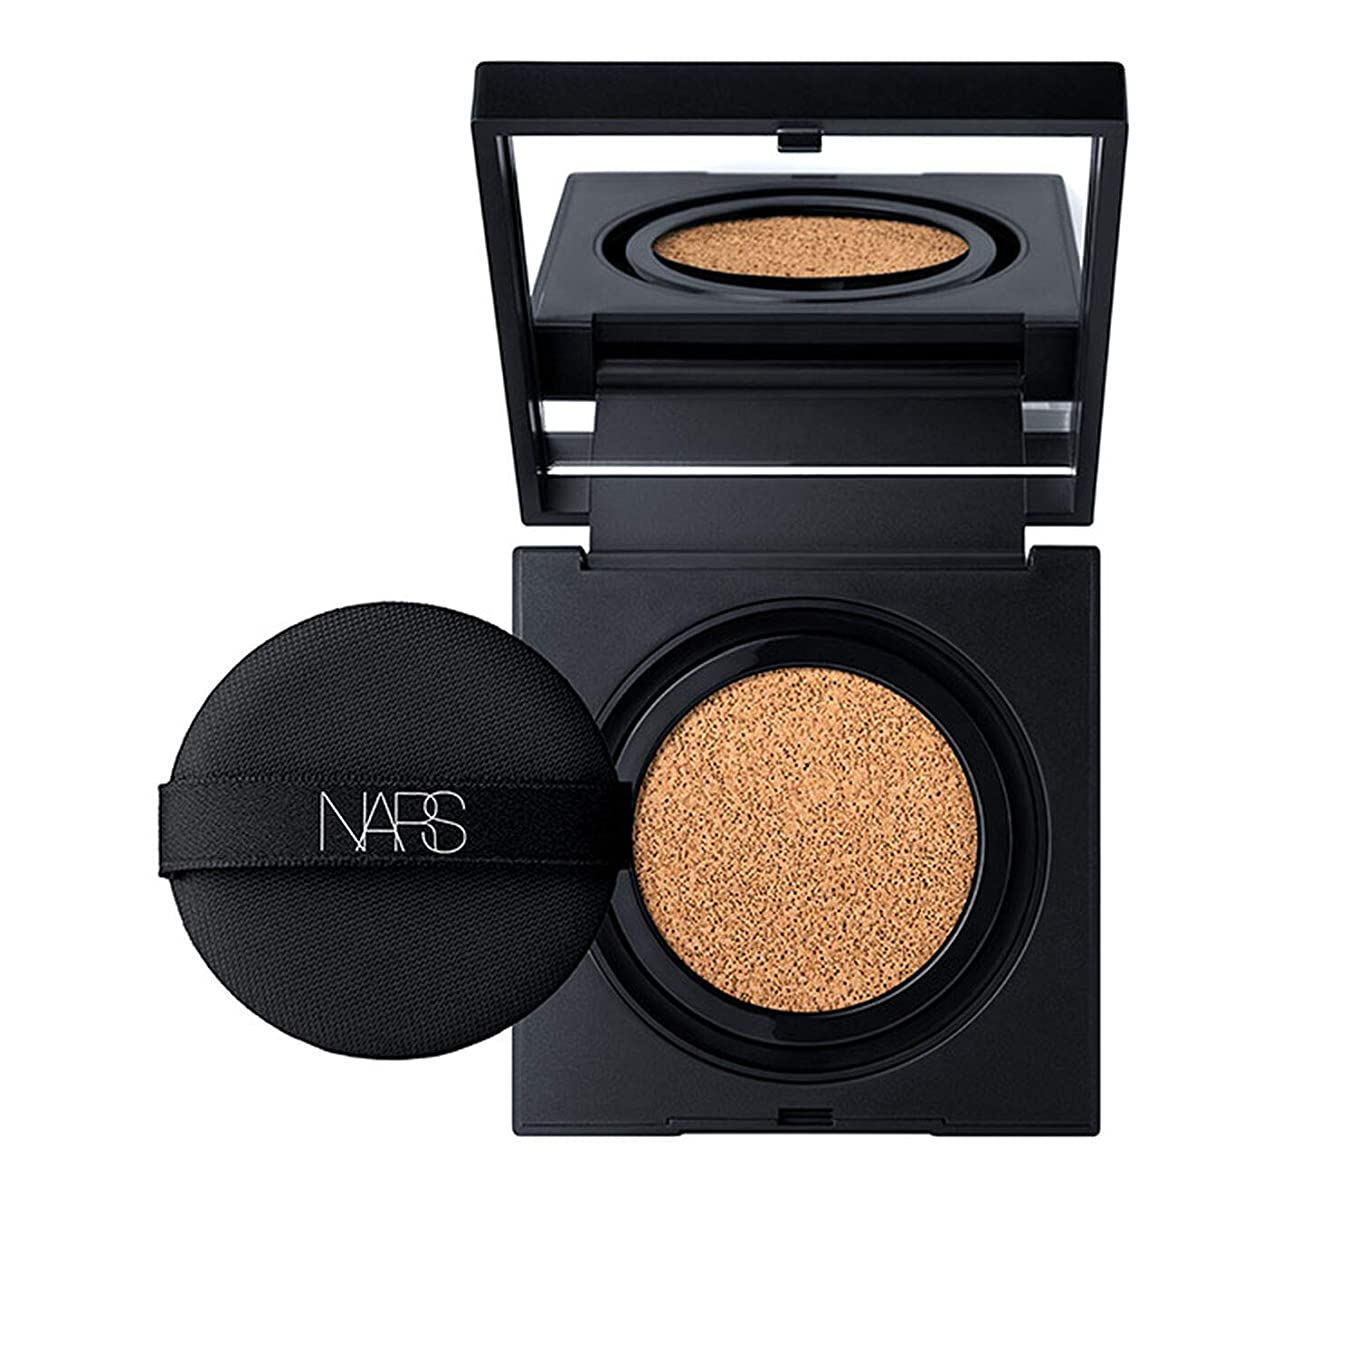 迅速オゾン迷路Nars(ナーズ) Natural Radiant Longwear Cushion Foundation 12g # Punjab